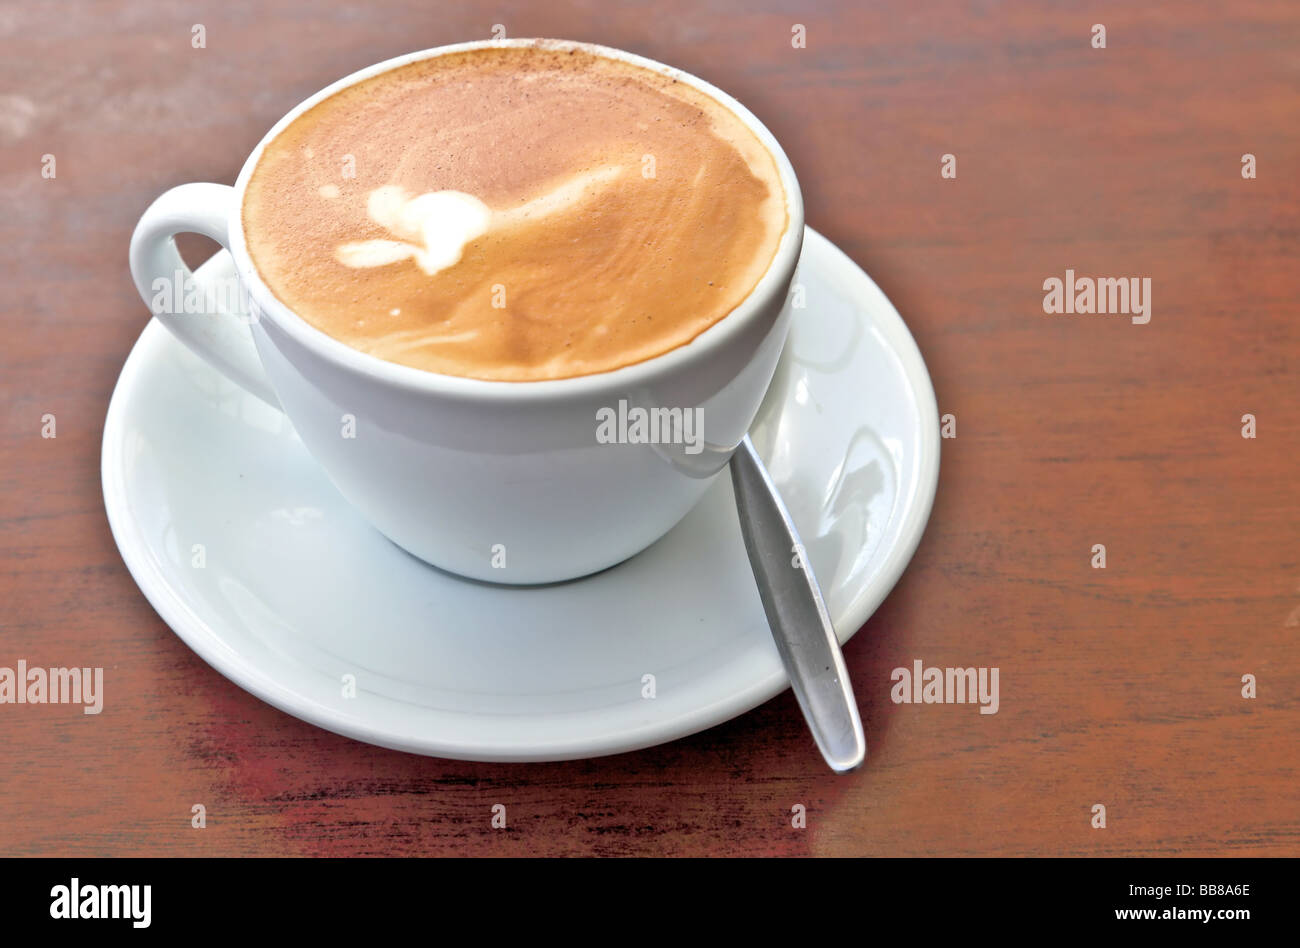 Coffee art in a cup with saucer - Stock Image